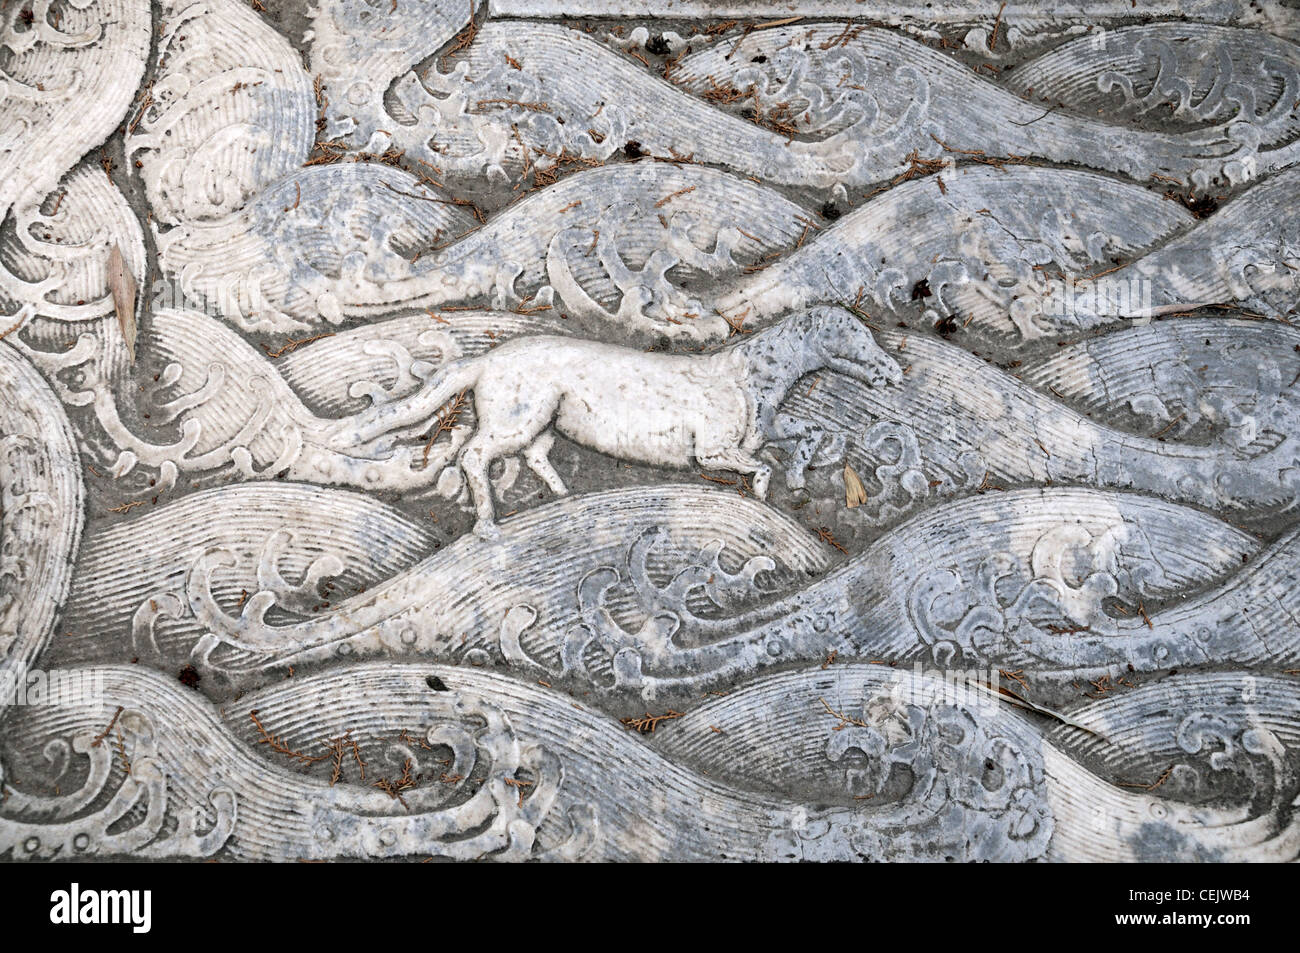 Carved Stone Slab : Intricate intricately carved carving stone slab bas relief